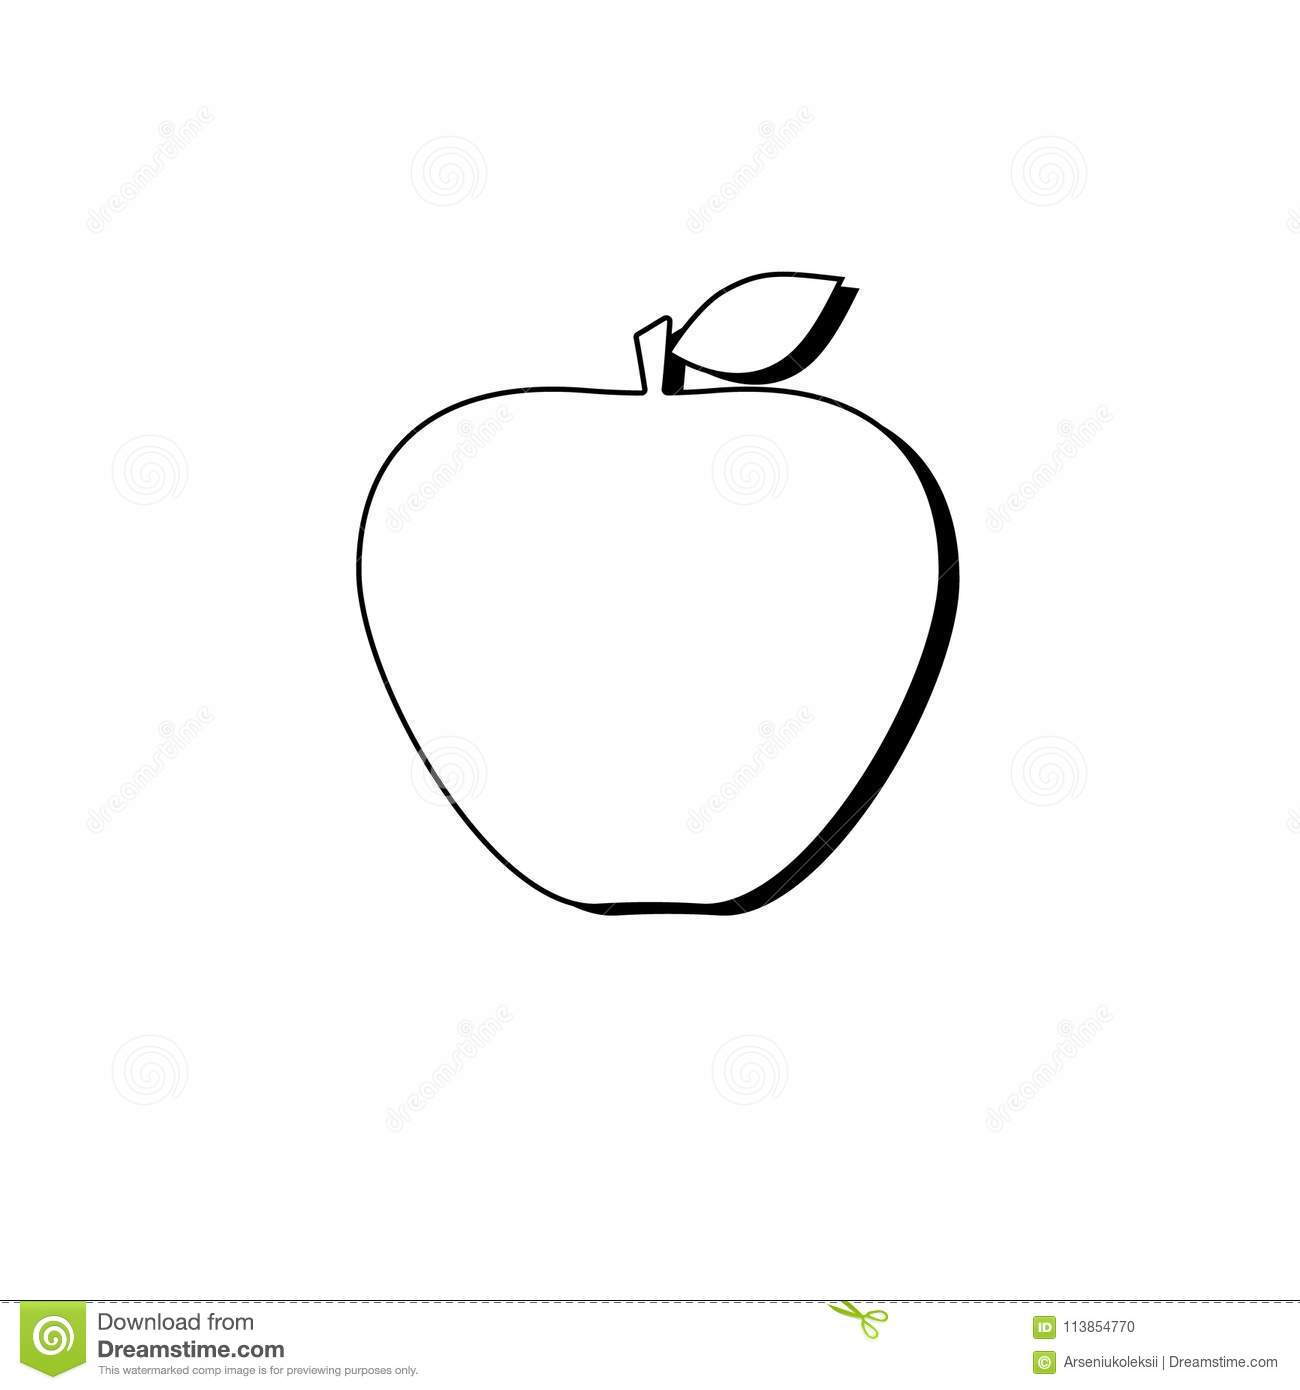 outlined apple sign stock vector. illustration of graphic - 113854770